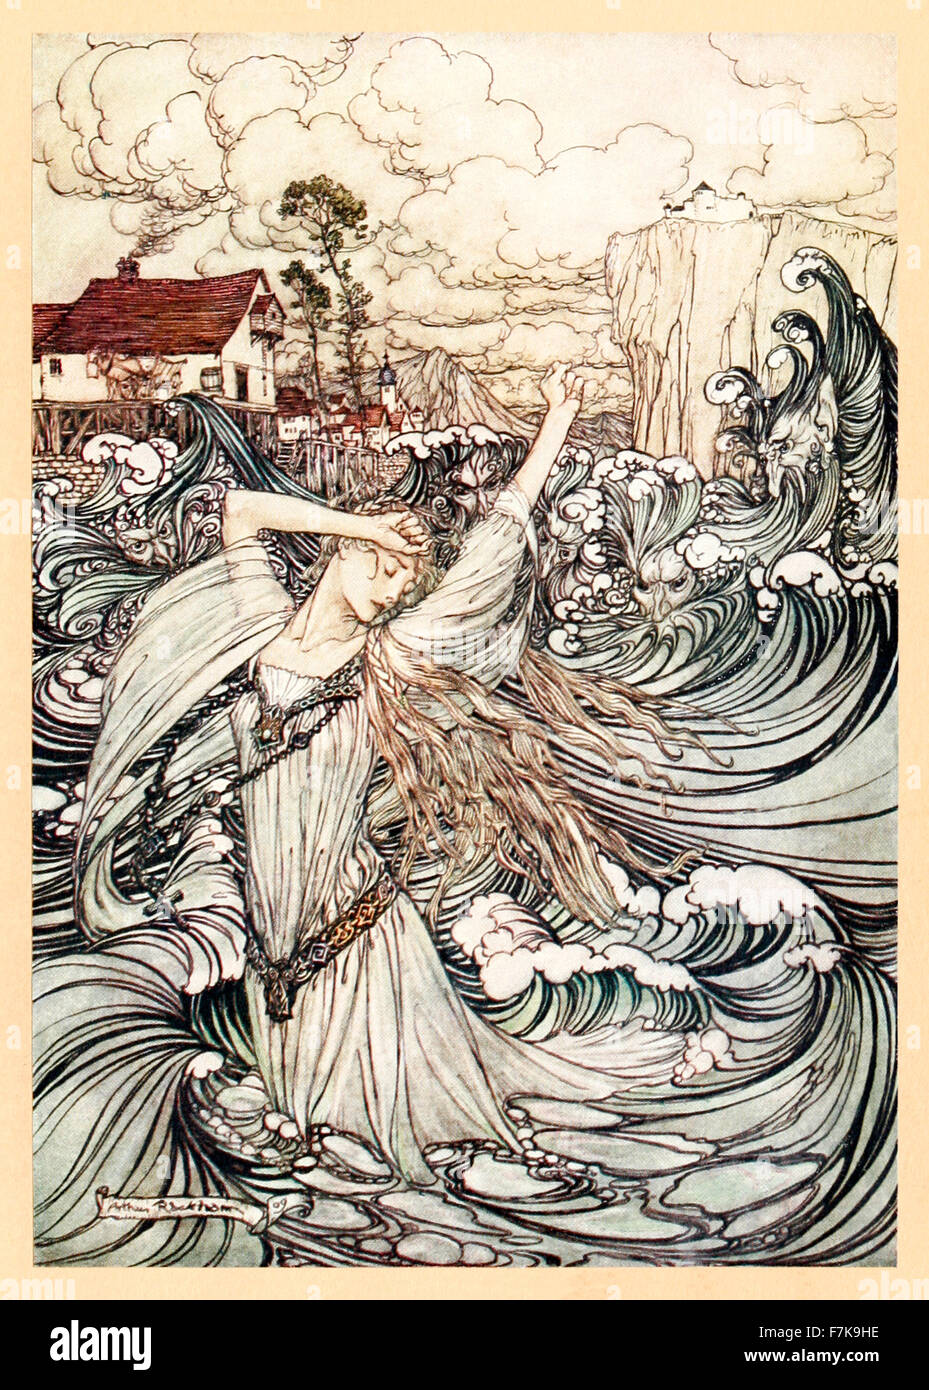 'Soon she was lost to sight in the Danube' from 'Undine' illustrated by Arthur Rackham (1867-1939). See - Stock Image